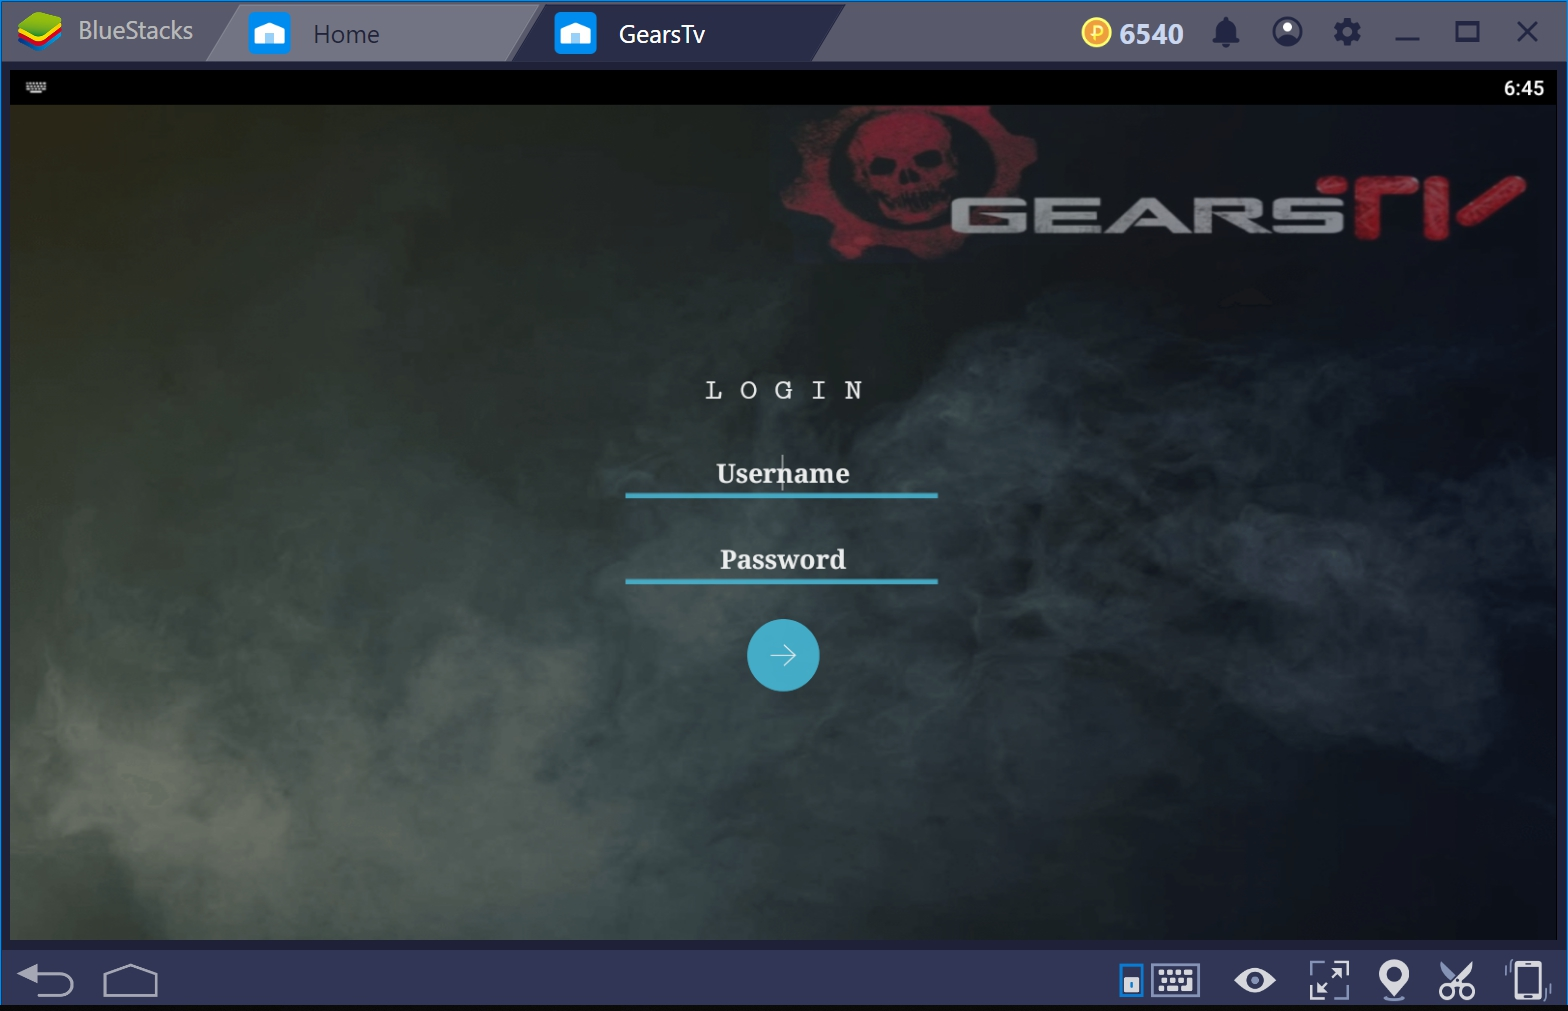 Download Gears TV Apk for Android, Windows PC and Smart TV [May 2019